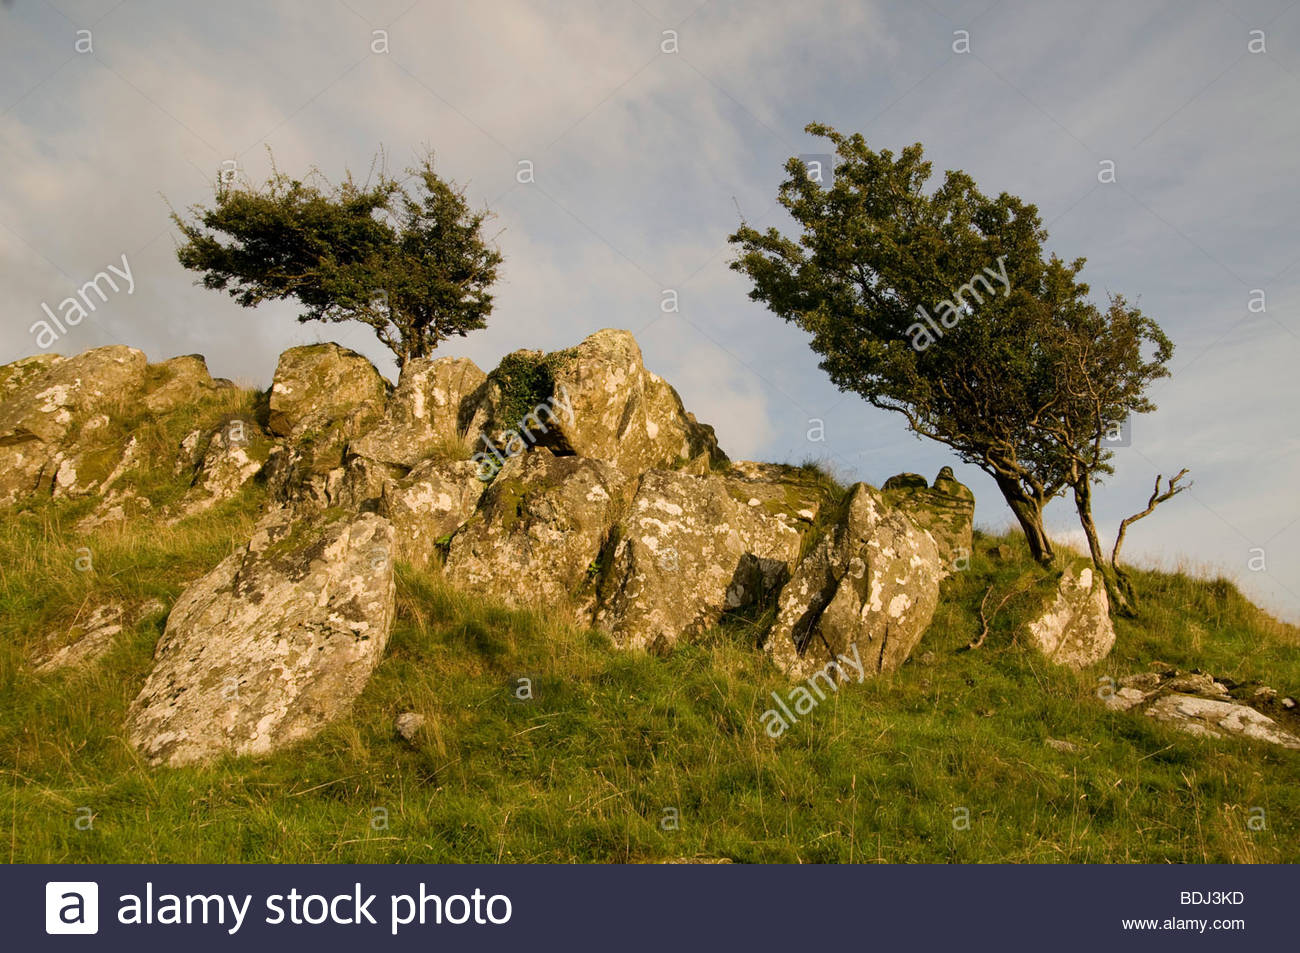 Windswept Hawthorn trees near the village of Croesor, Snowdonia National Park - Stock Image